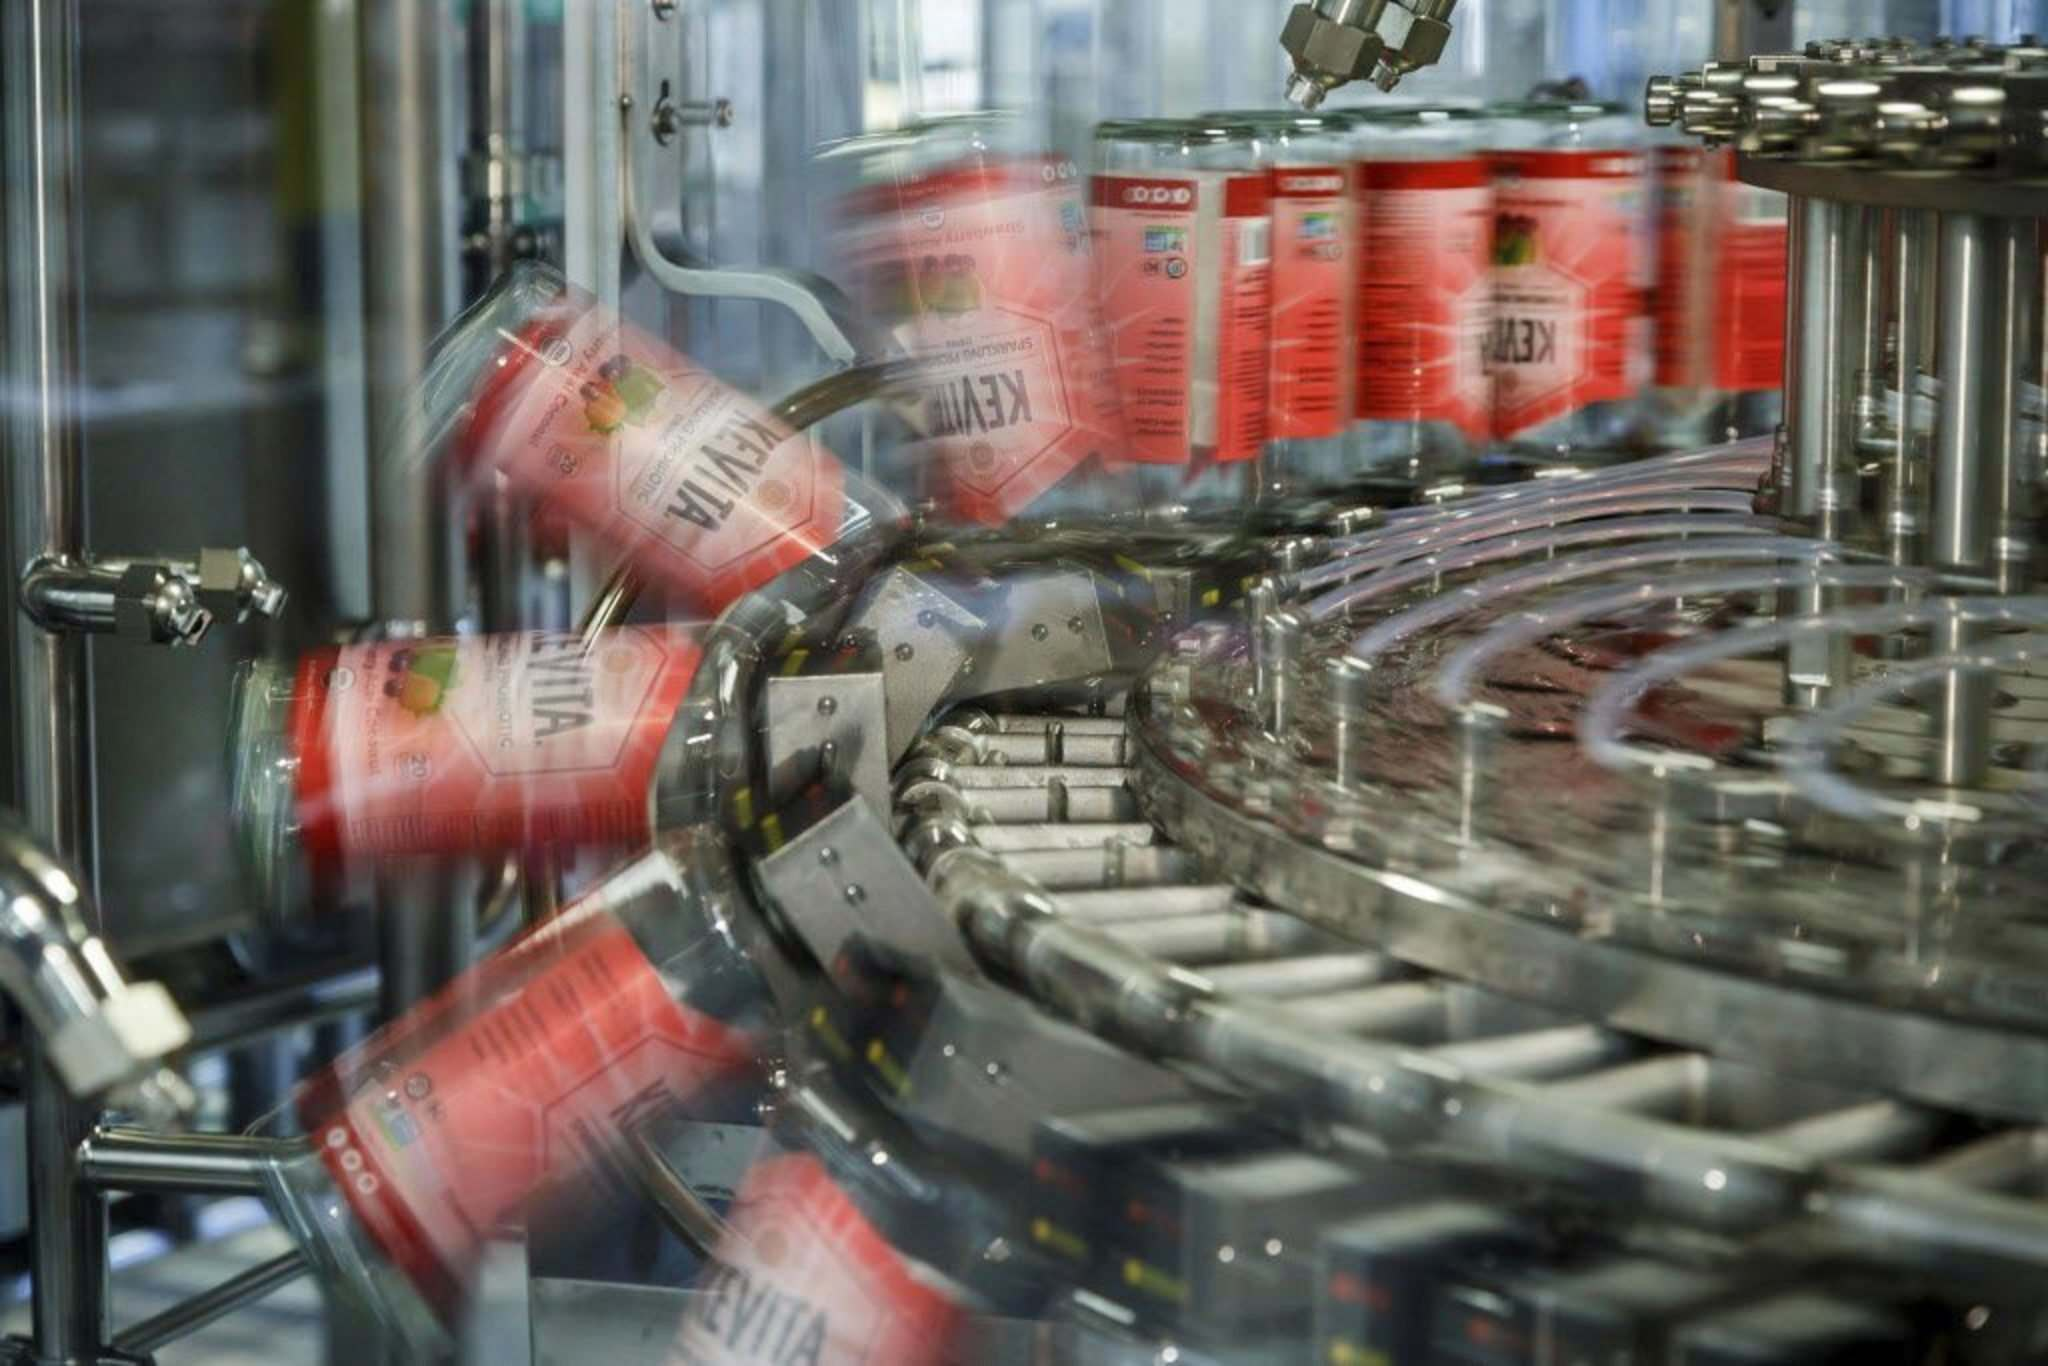 A 57,000-square-foot bottling plant in Oxnard, Calif., can produce 160,000 bottles of its popular fermented kombucha tea and other beverages in a day. (Ricardo DeAratanha / Los Angeles Times)